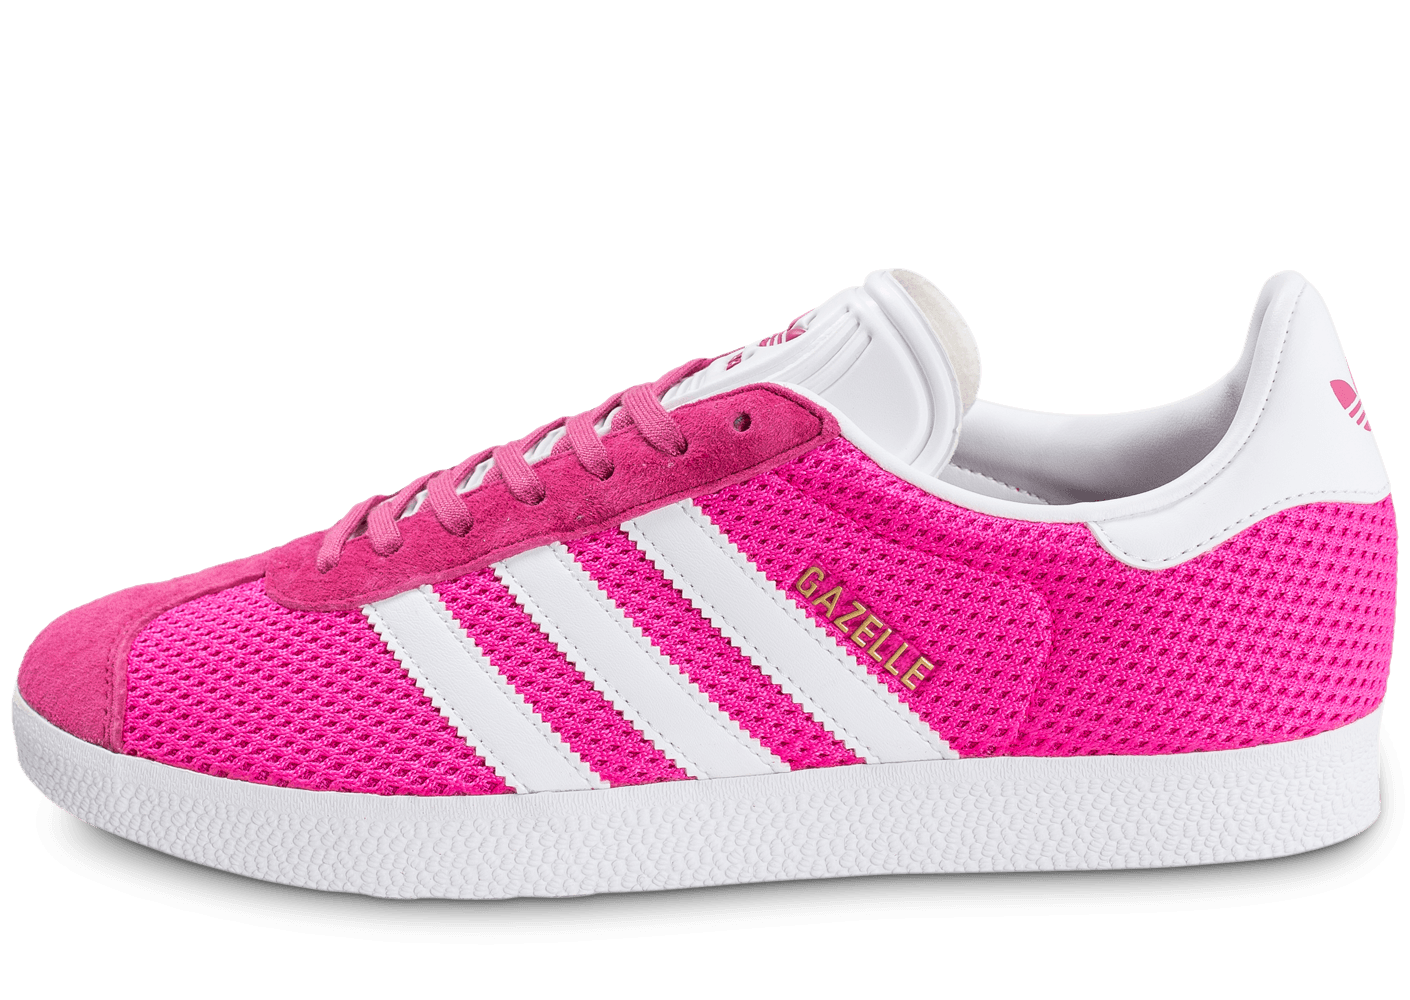 chaussure adidas rose fluo